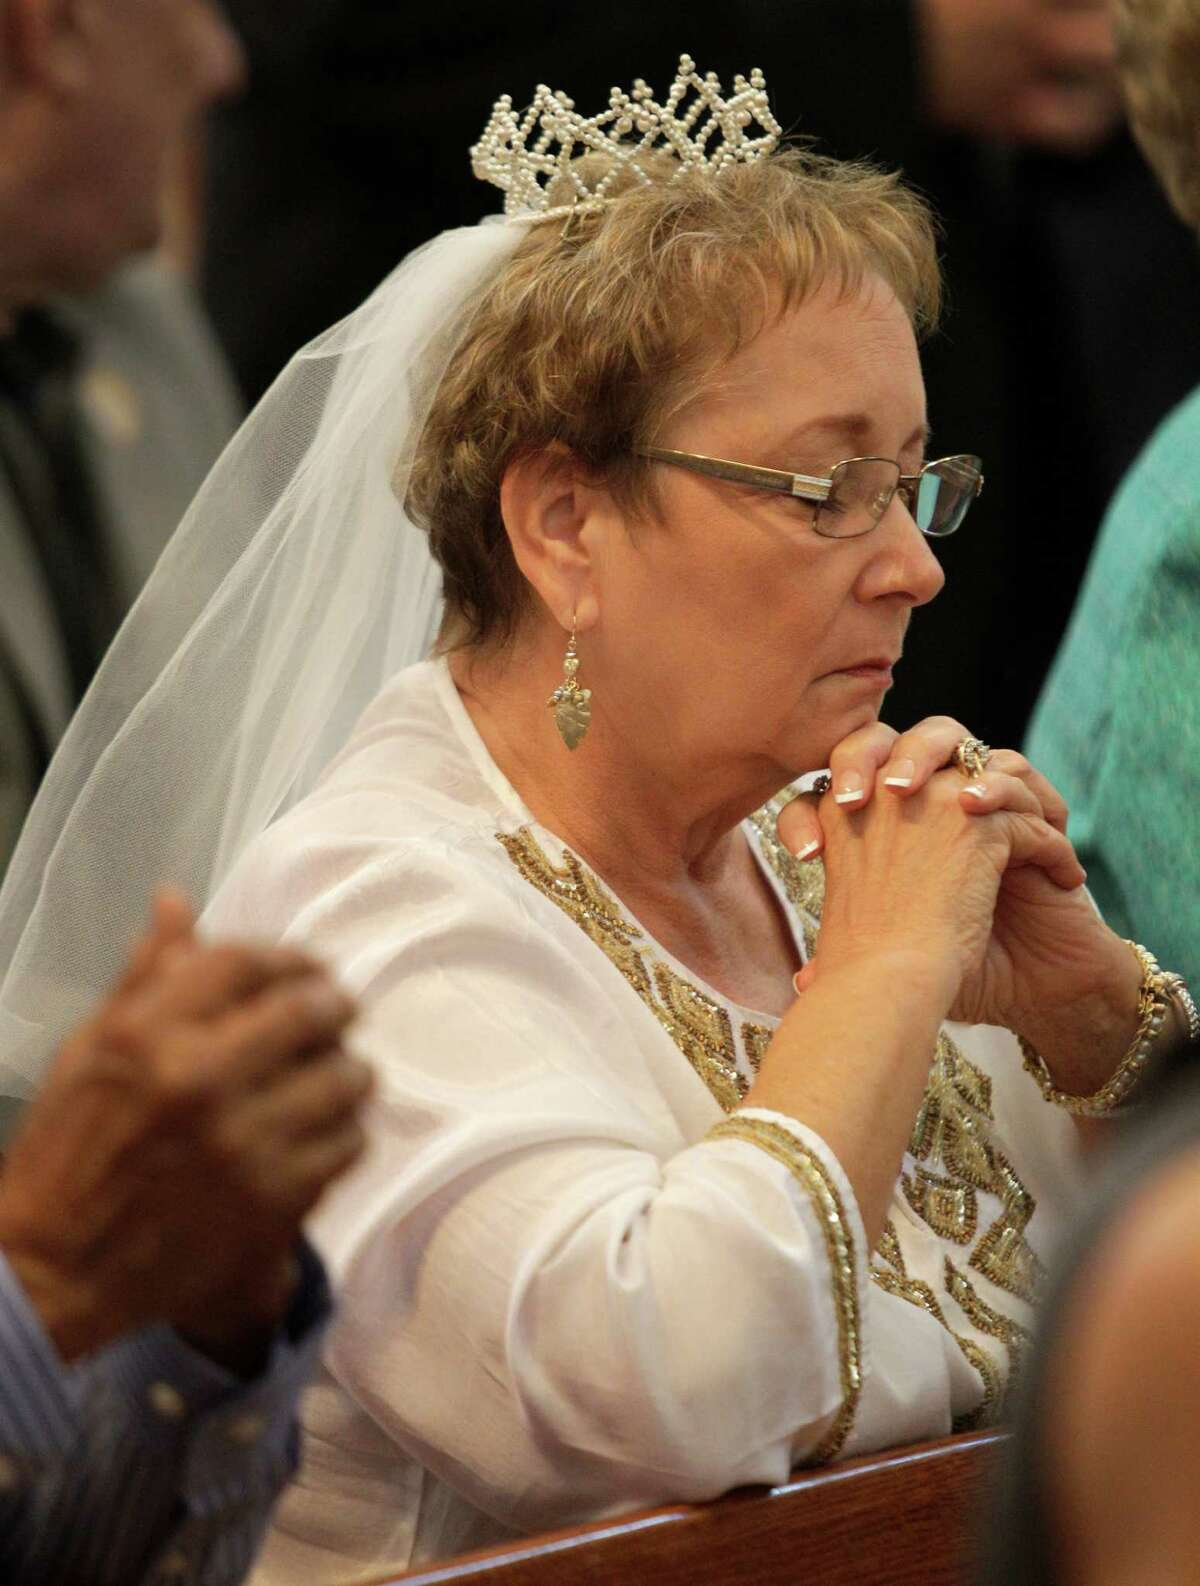 Lynnette Bartula of Houston wearing her orginal wedding headpiece prays during the Wedding Anniversary Jubilee at the Co-Cathedral of the Sacred Heart, 1111 St. Joseph Pkwy., Sunday, Sept. 15, 2013, in Houston. She and her husband, Ray Bartula, who were married on Sept. 17, 1963, joined more than 250 other couples in a mass lead by Cardinal Daniel DiNardo honoring couples celebrating their 50th wedding anniversary. The headpiece is original but she and her daughter, Dena Tamborella, had to replace the veil material.